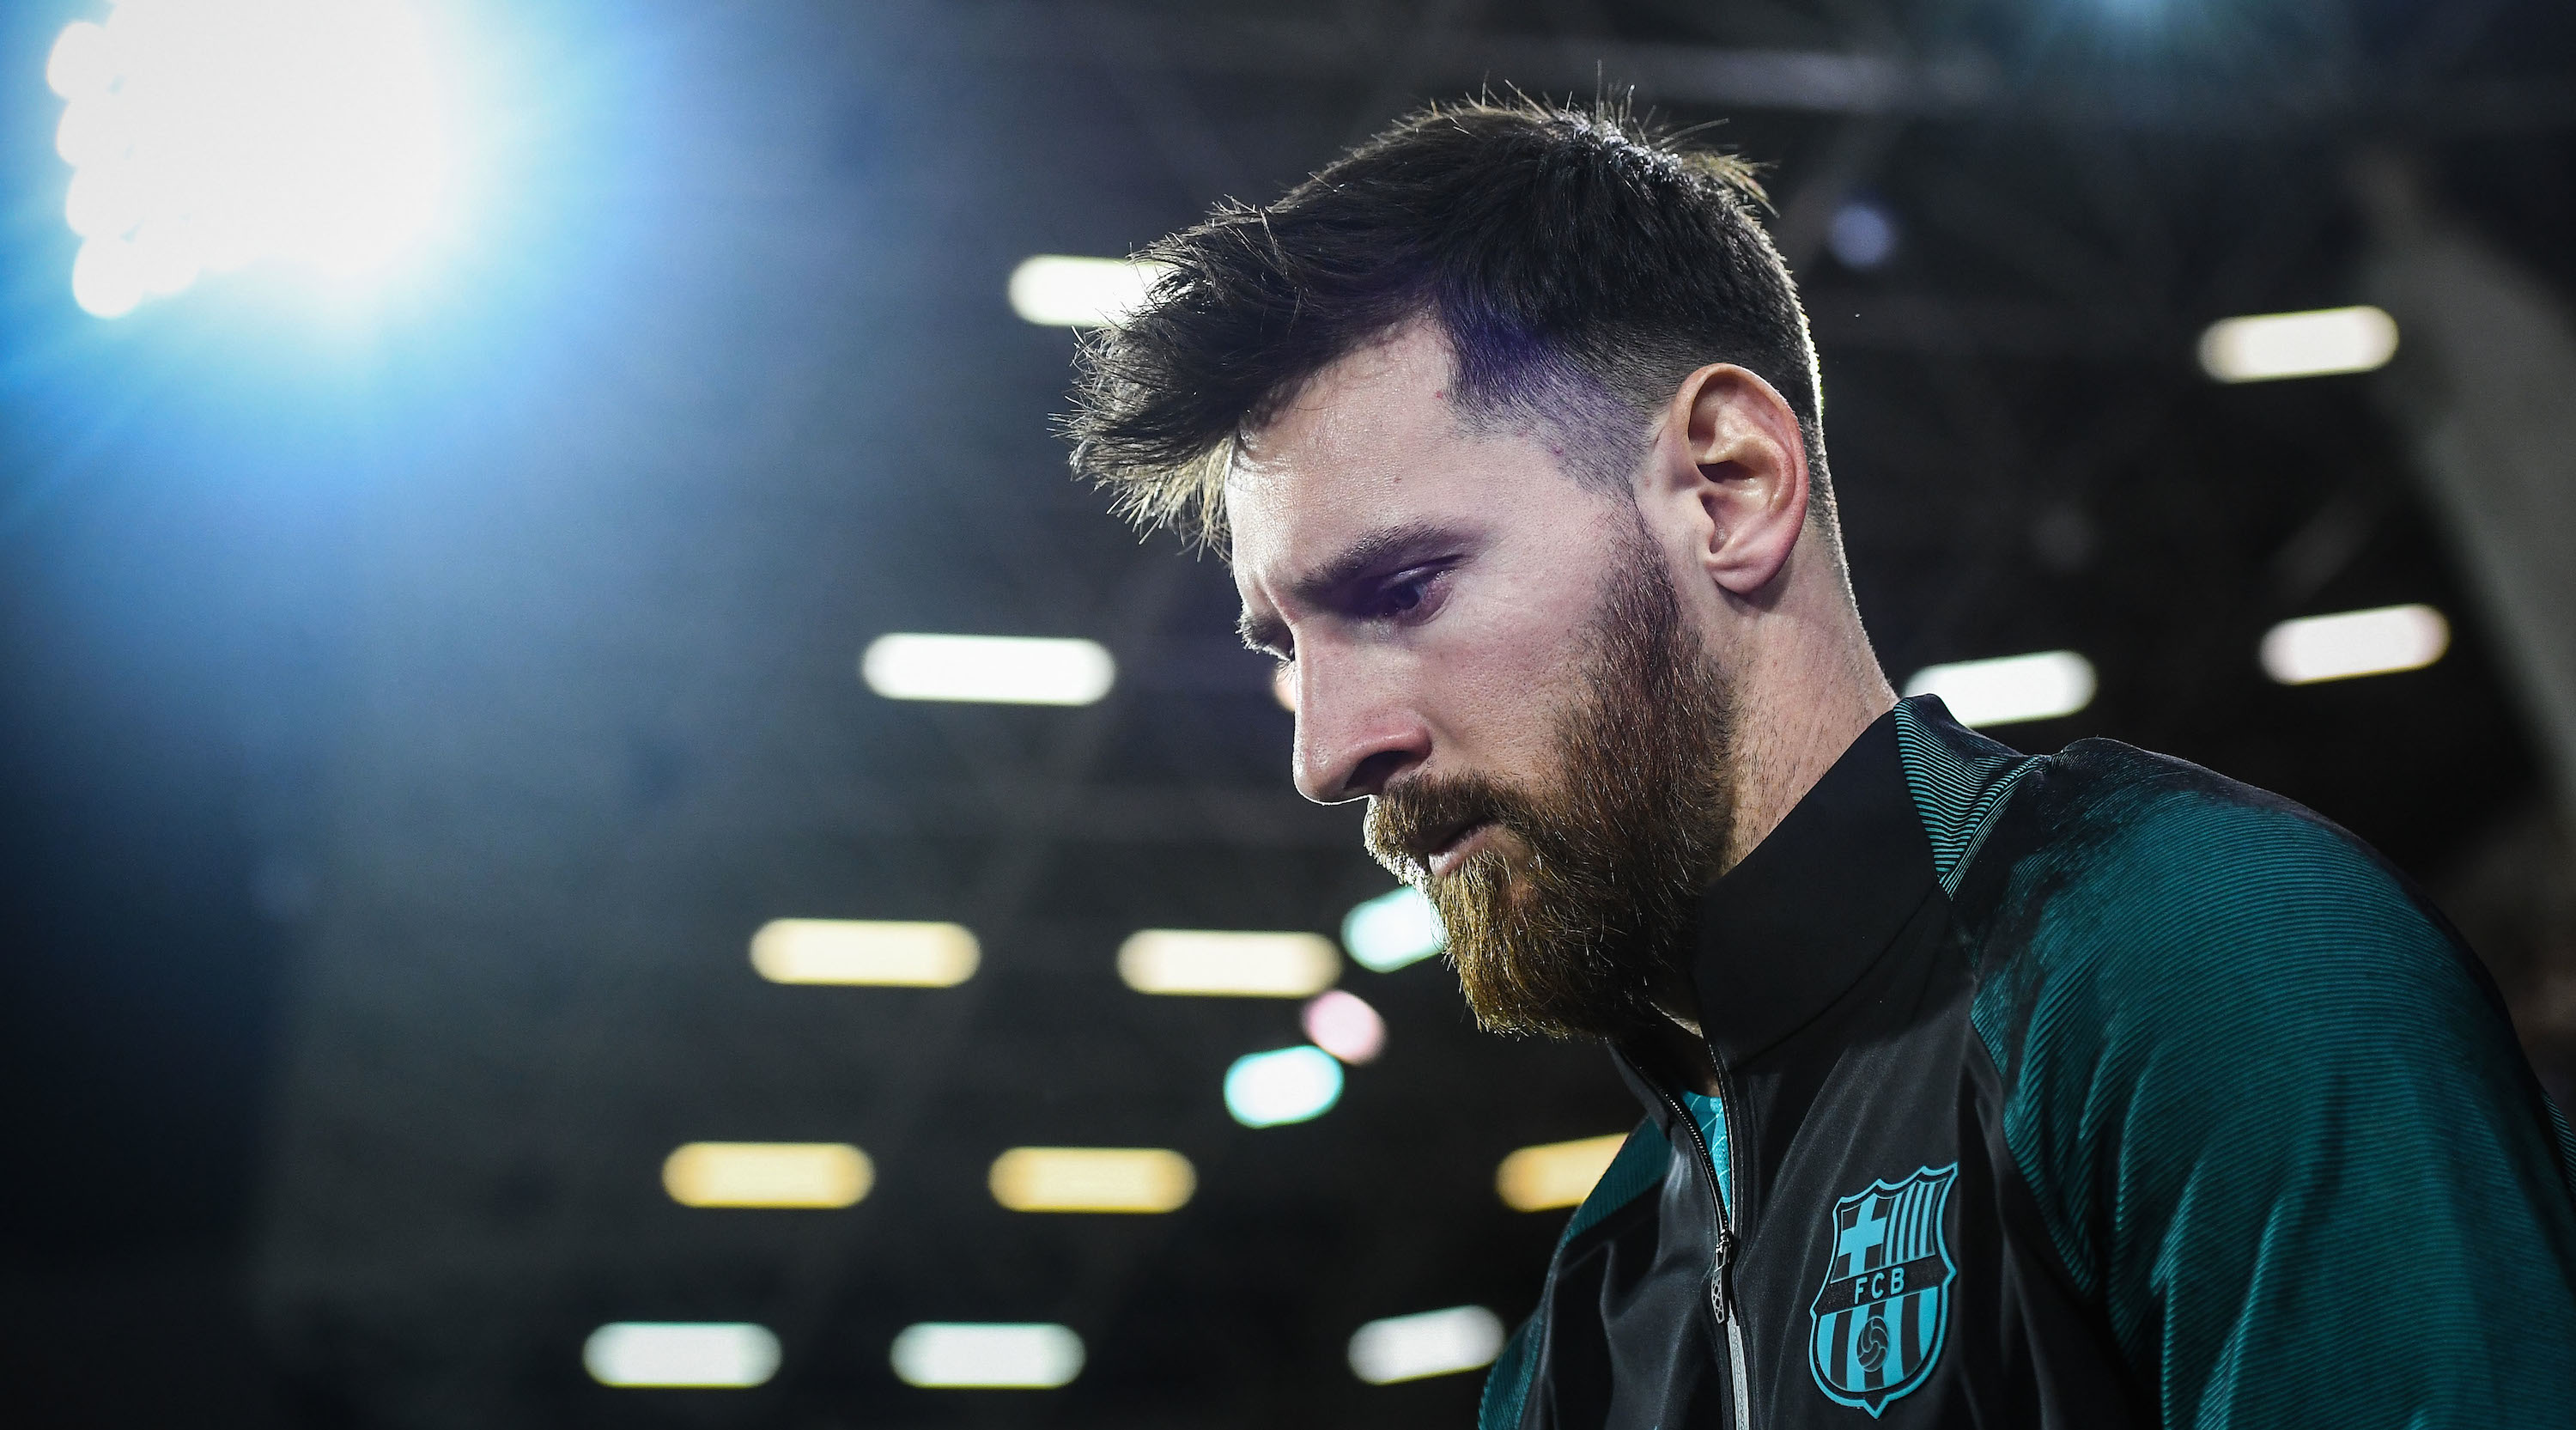 EIBAR, SPAIN - JANUARY 22: Lionel Messi of FC Barcelona walks onto the pitch prior to kick-off during the La Liga match between SD Eibar and FC Barcelona at Ipurua stadium on January 22, 2017 in Eibar, Spain. (Photo by David Ramos/Getty Images)